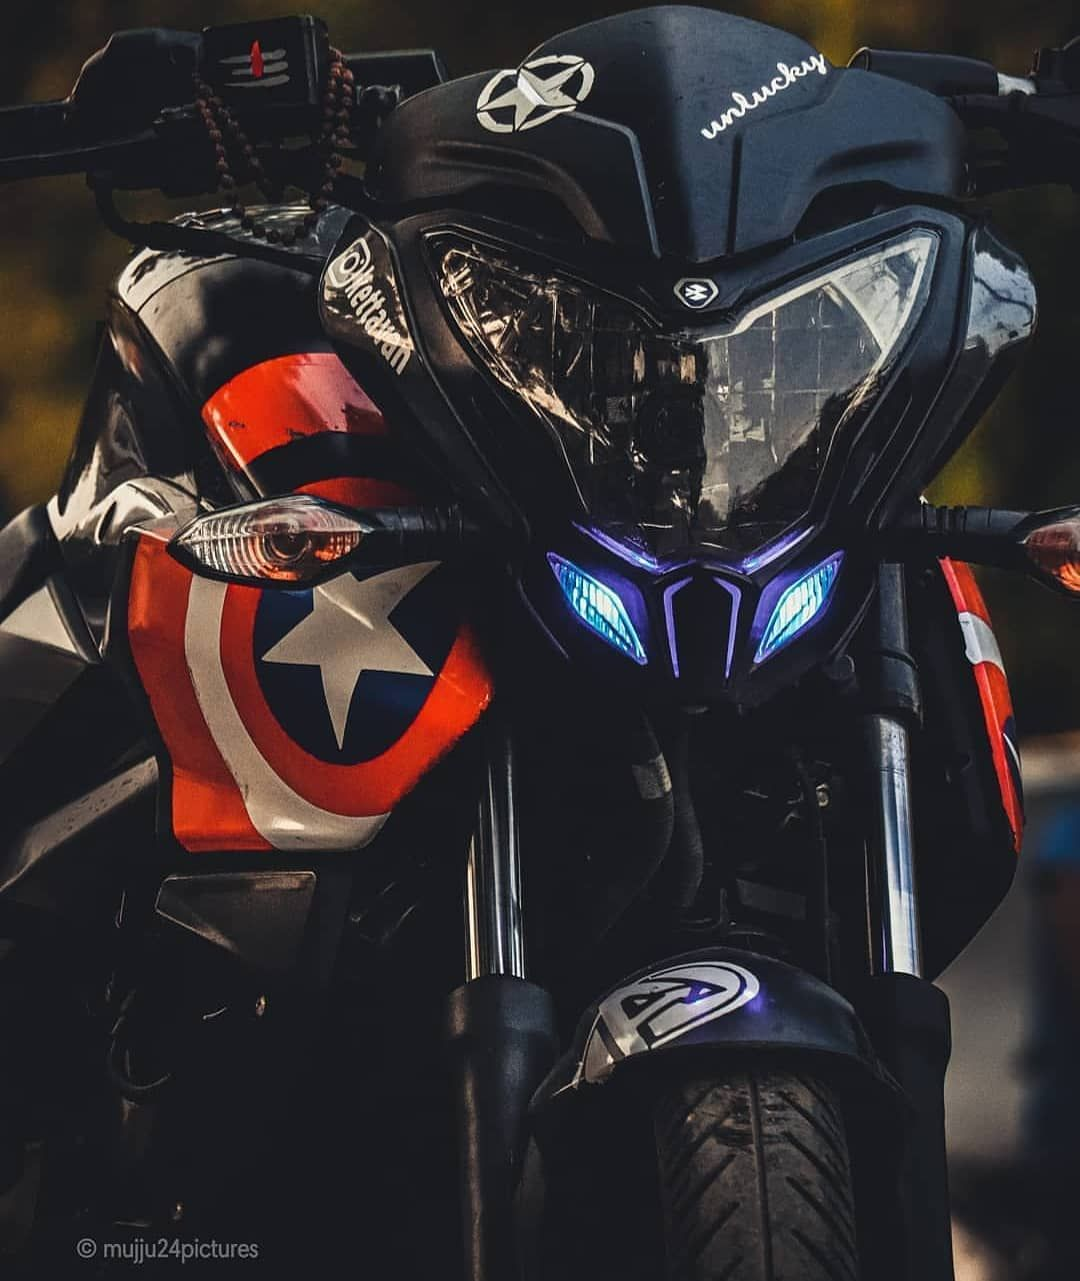 Pulsar 200ns Official On Instagram Follow Oye Venom Ns200 Dm For Credit Use Hashtag Pulsar 200ns Of Bike Sketch Bike Pic Bike Stickers